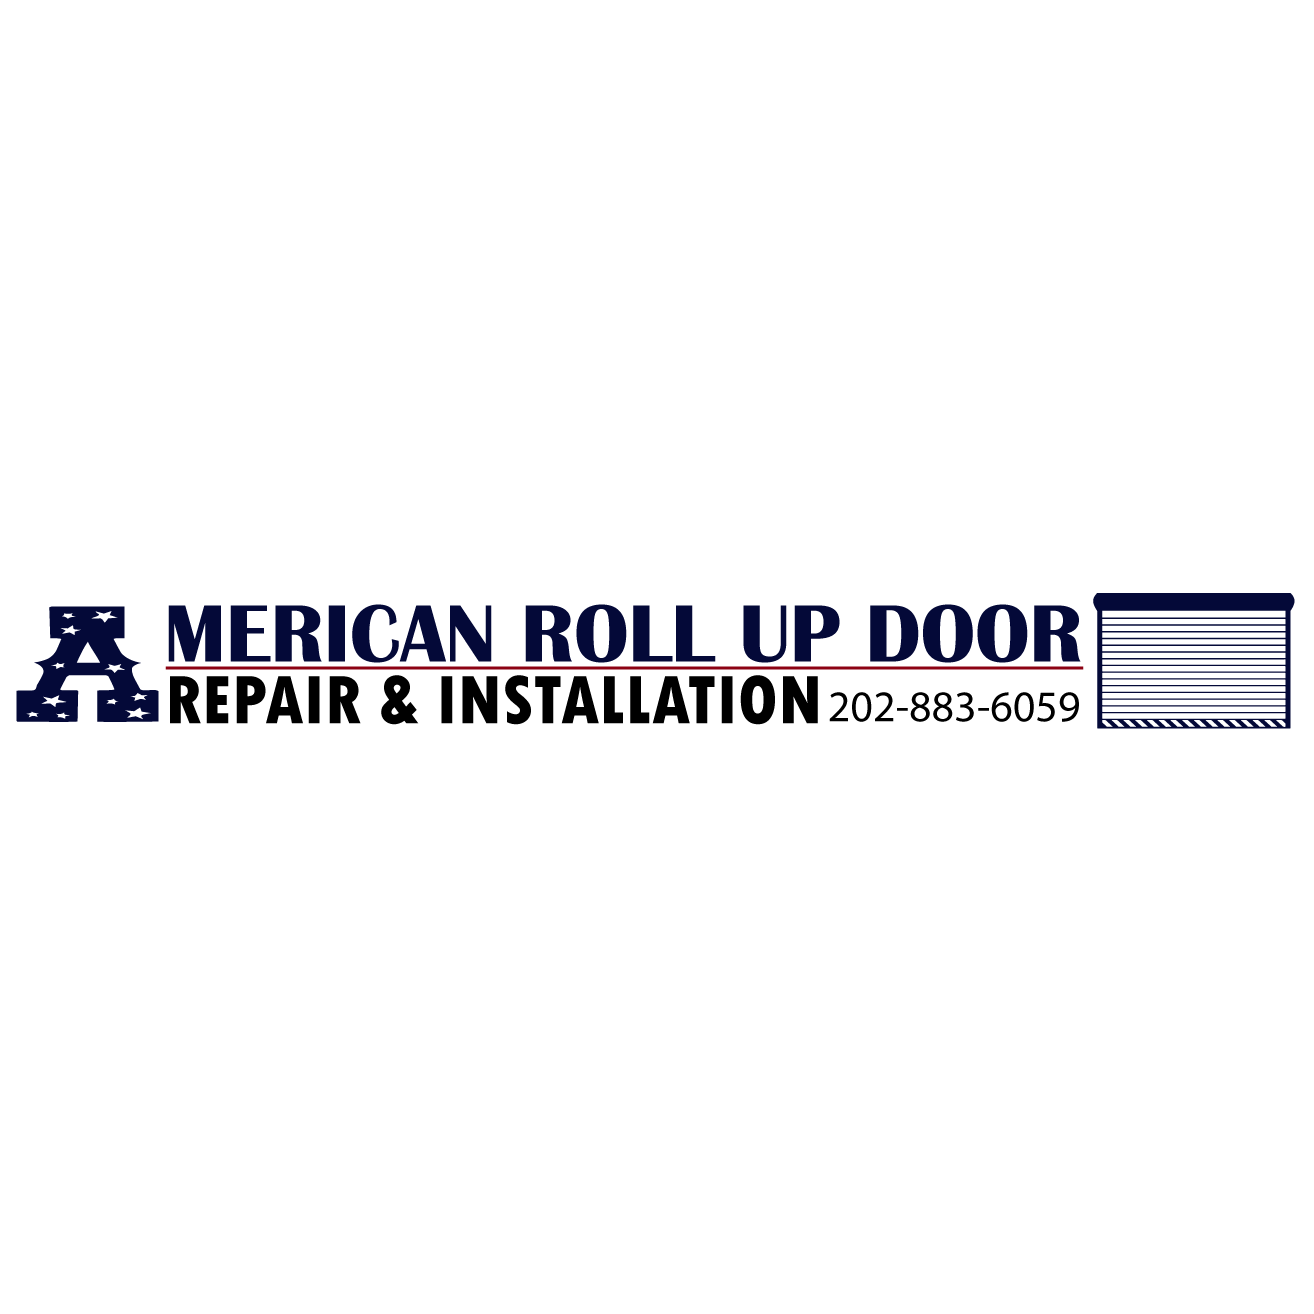 American Roll Up Door Repair & Installation image 5